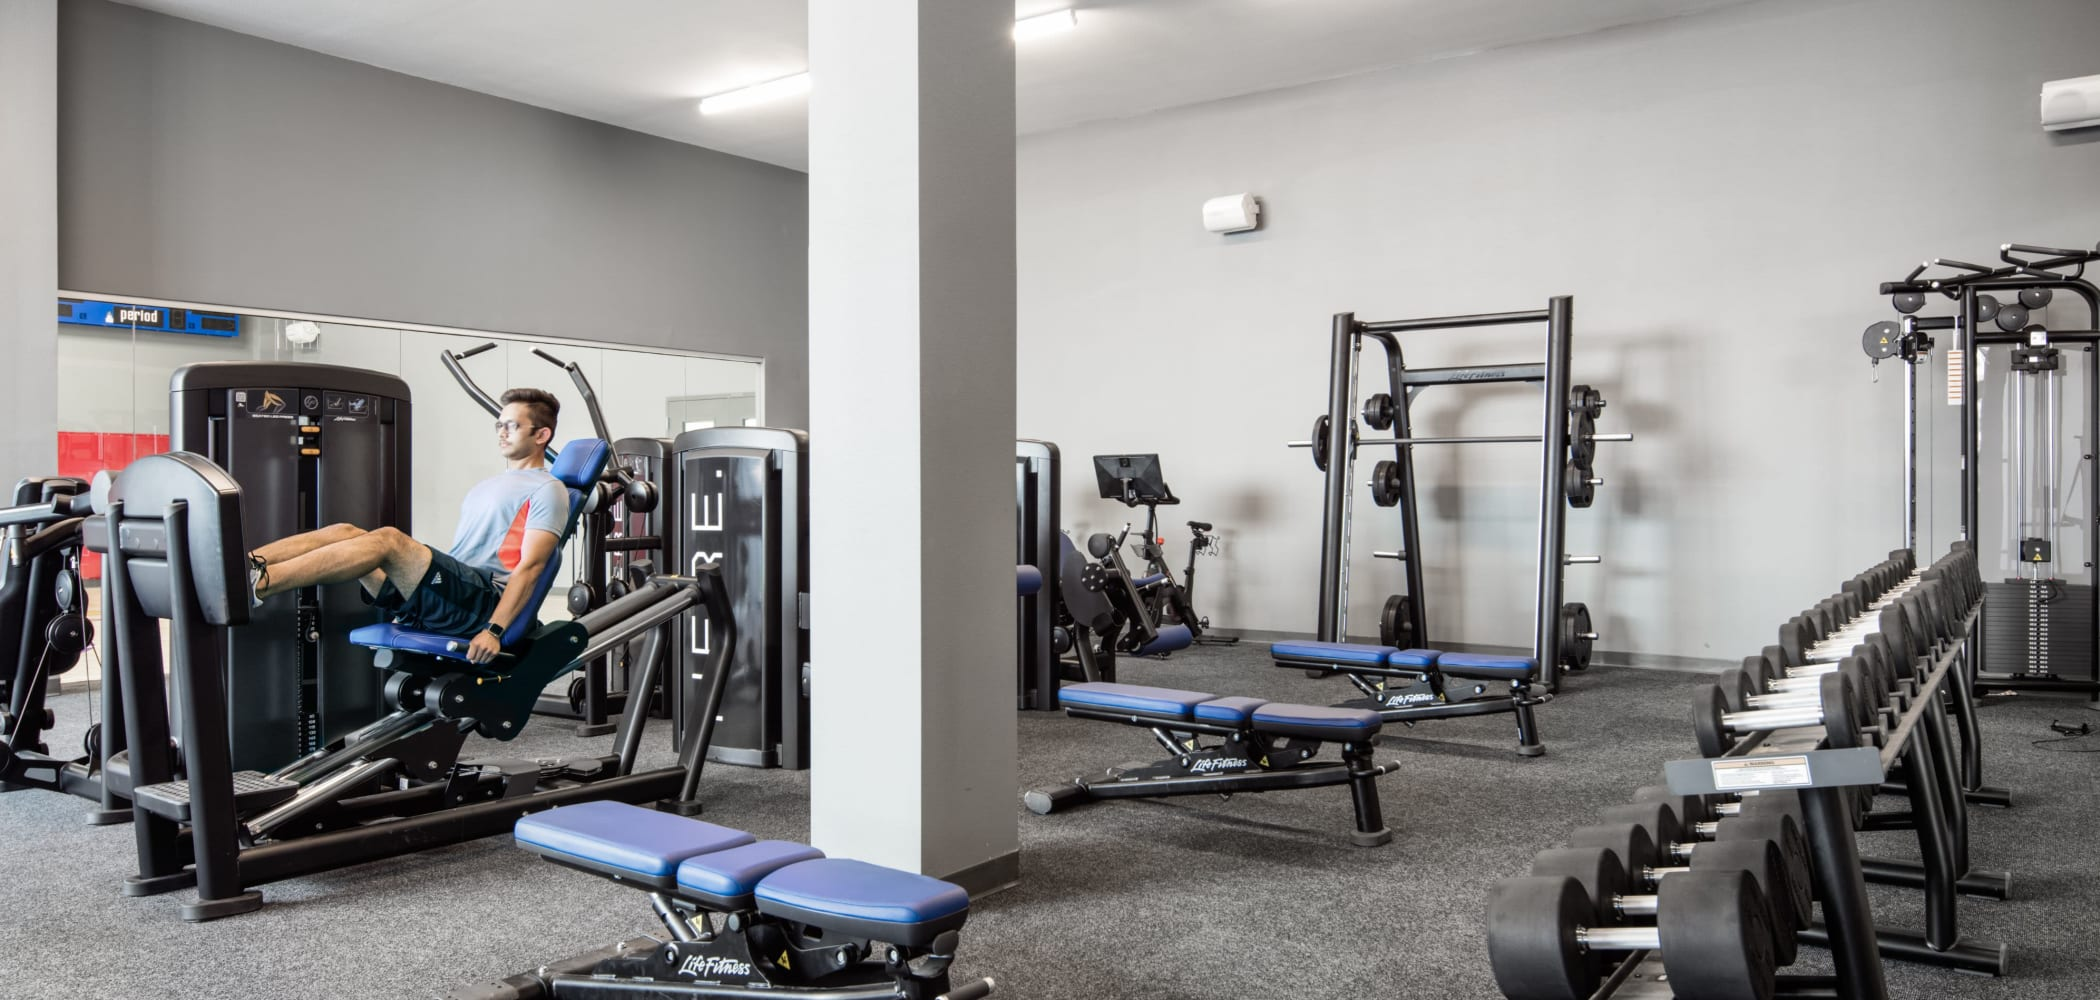 Fully equipped fitness center for residents at HERE Kansas in Lawrence, Kansas